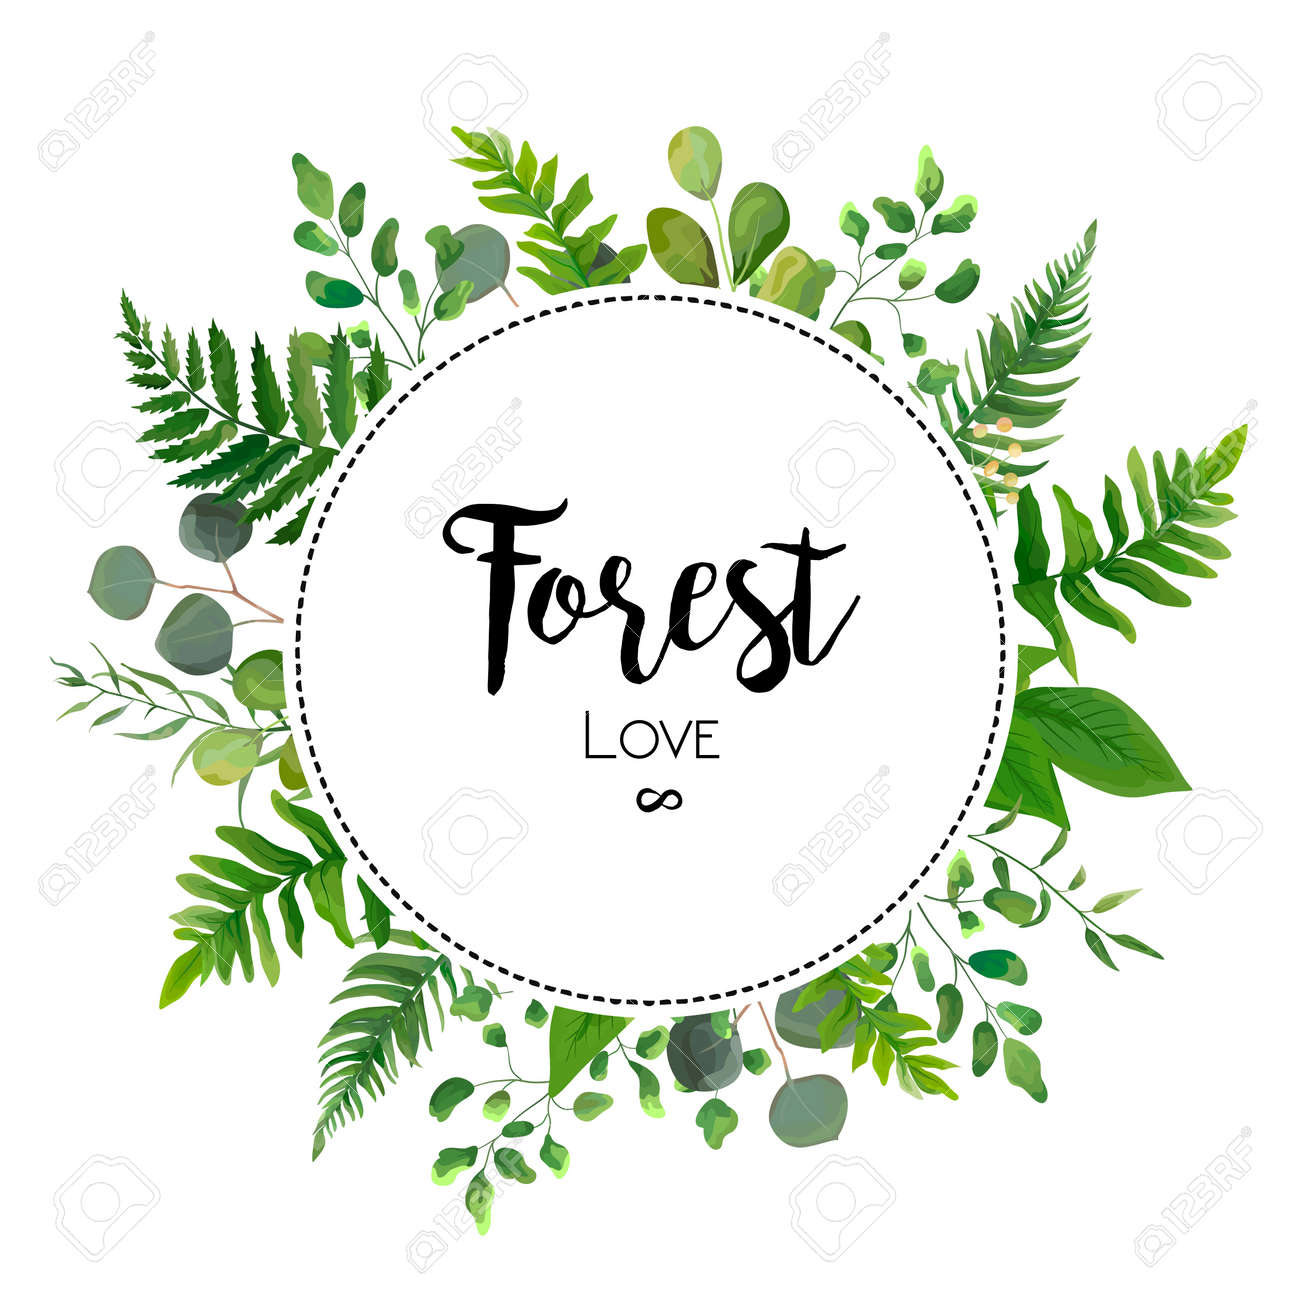 Floral vector invite card Design with green Eucalyptus fern leaves elegant greenery berry forest round circle wreath beautiful cure frame border print. Vector garden illustration, Wedding Invitation - 92712177